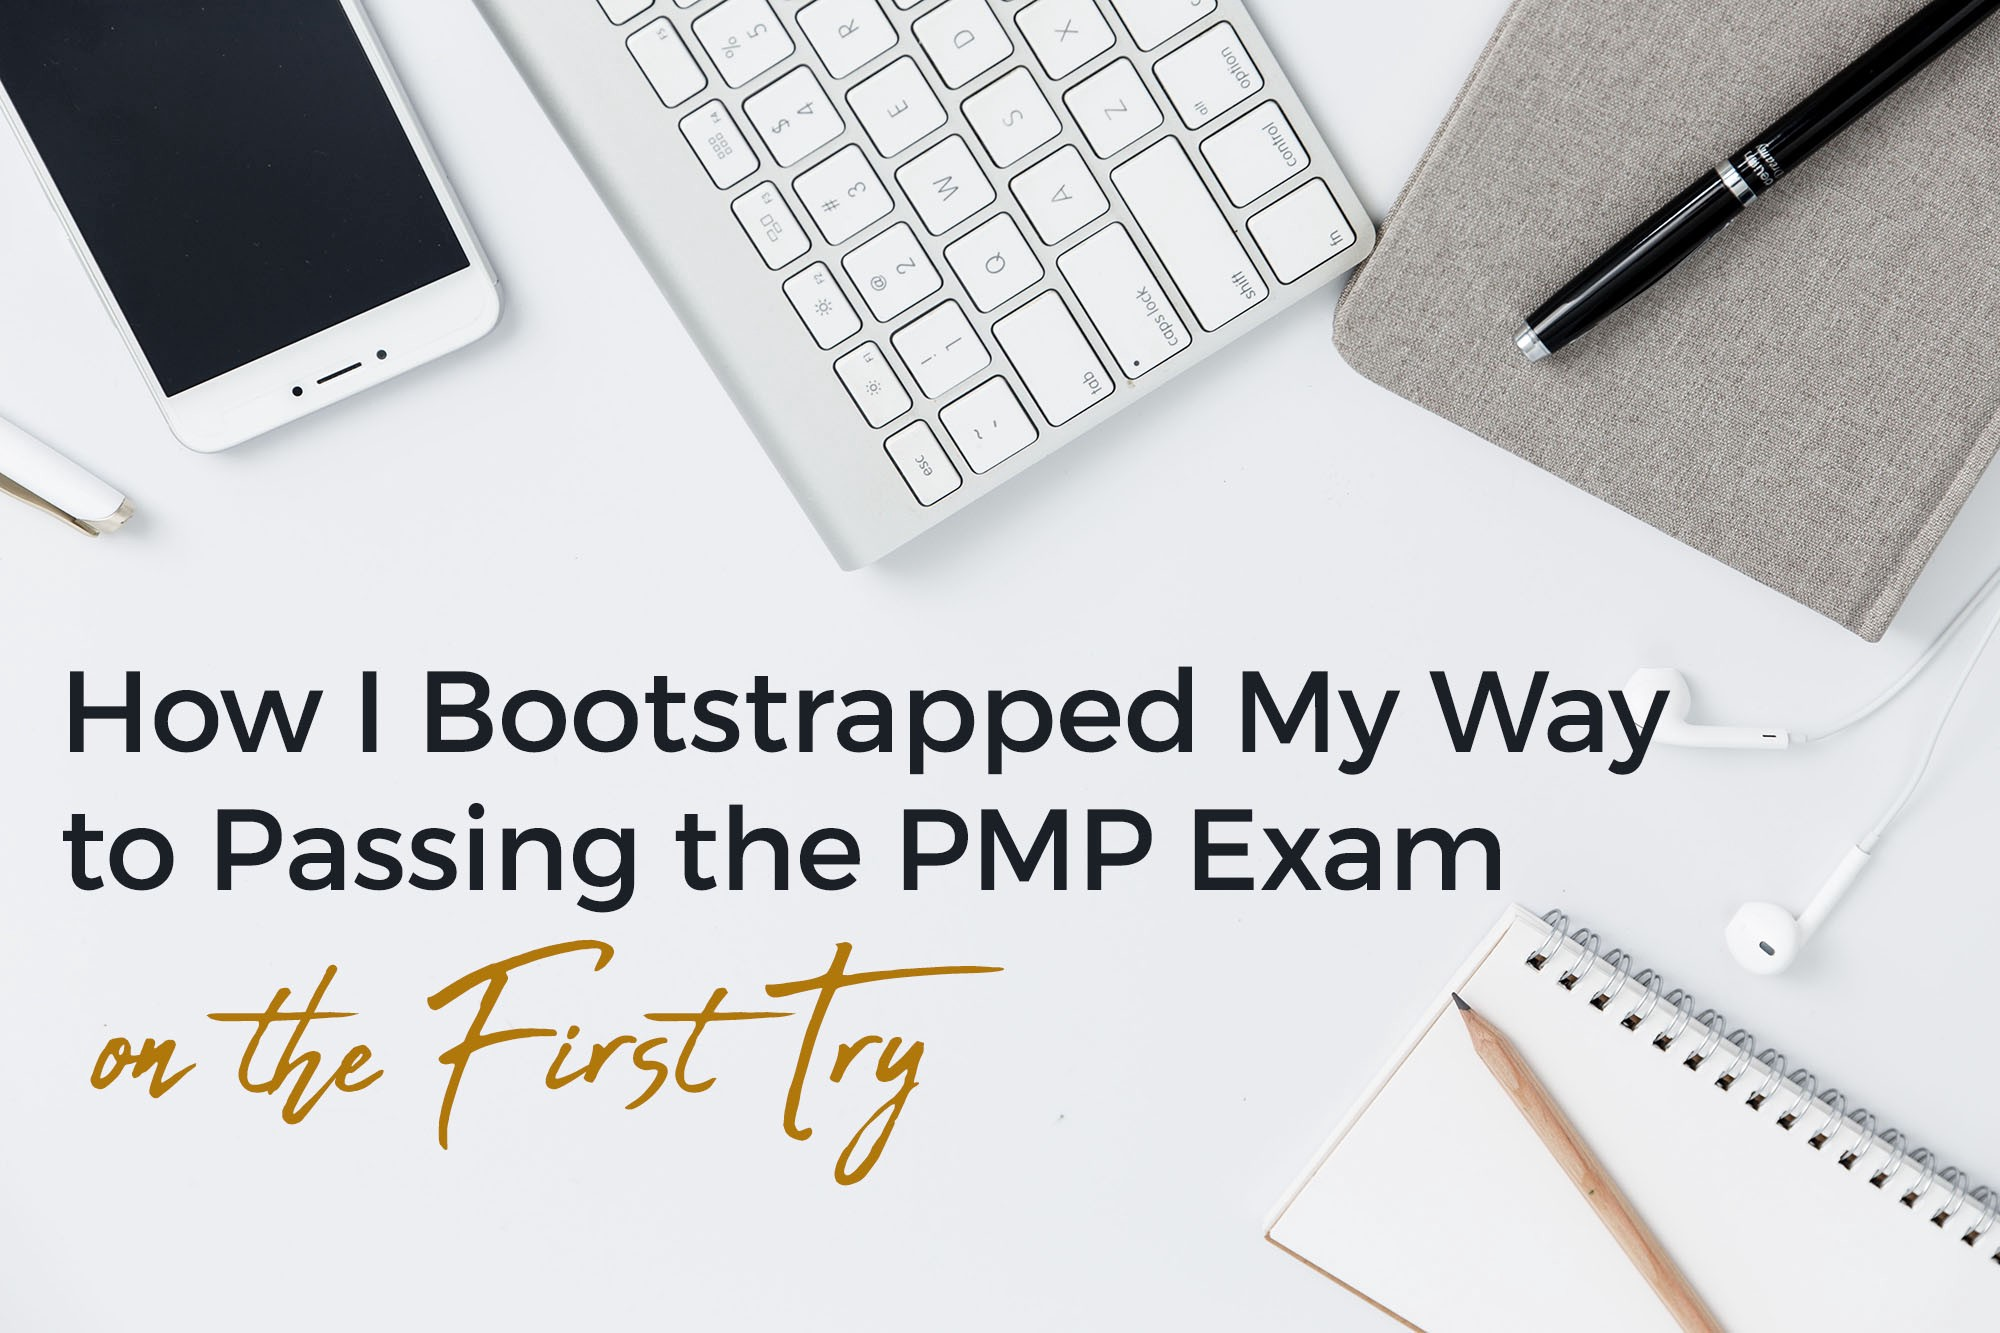 How I Bootstrapped My Way to Passing the PMP Exam on the